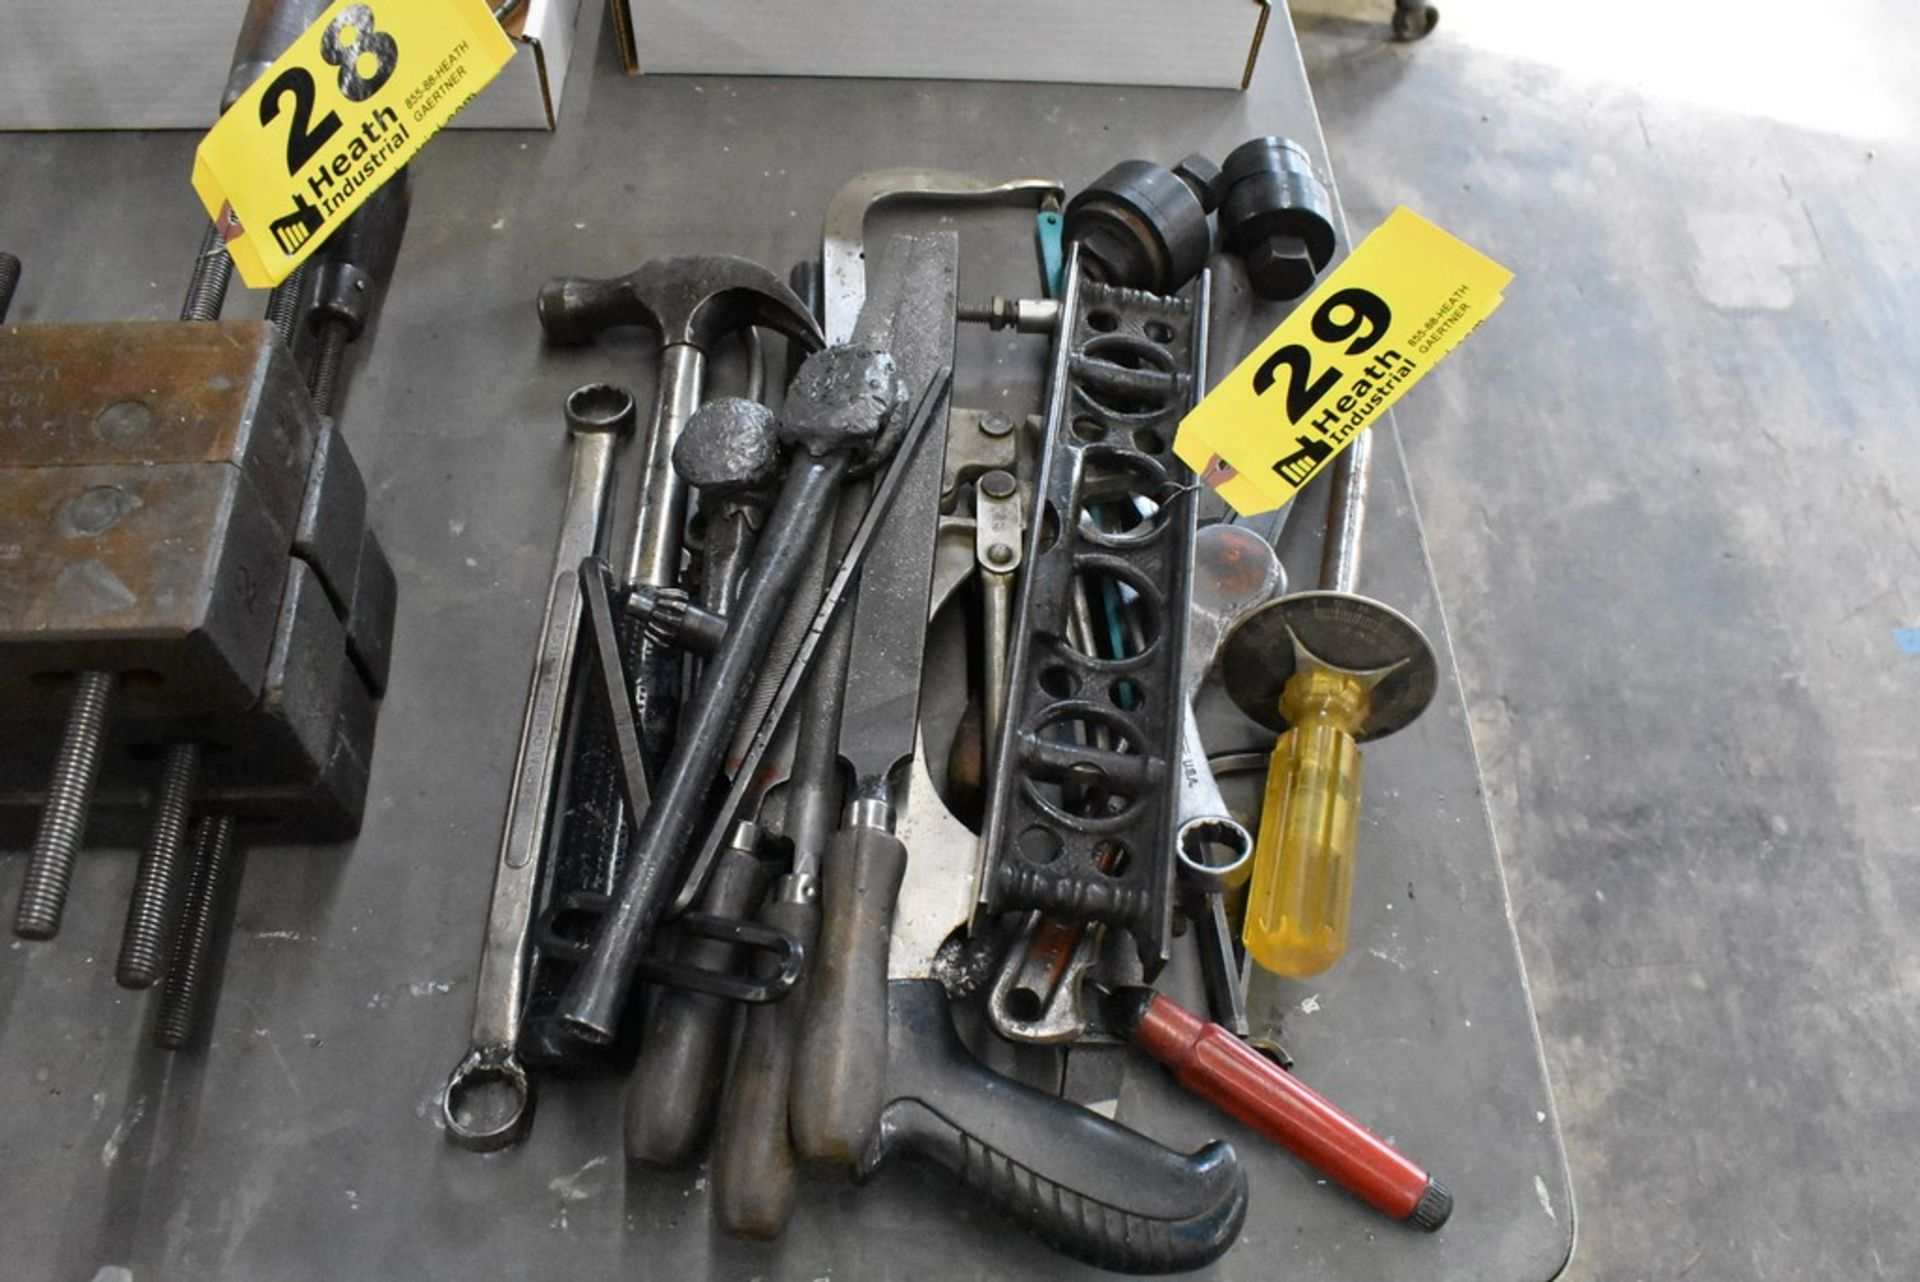 ASSORTED HAND TOOLS - Image 2 of 2